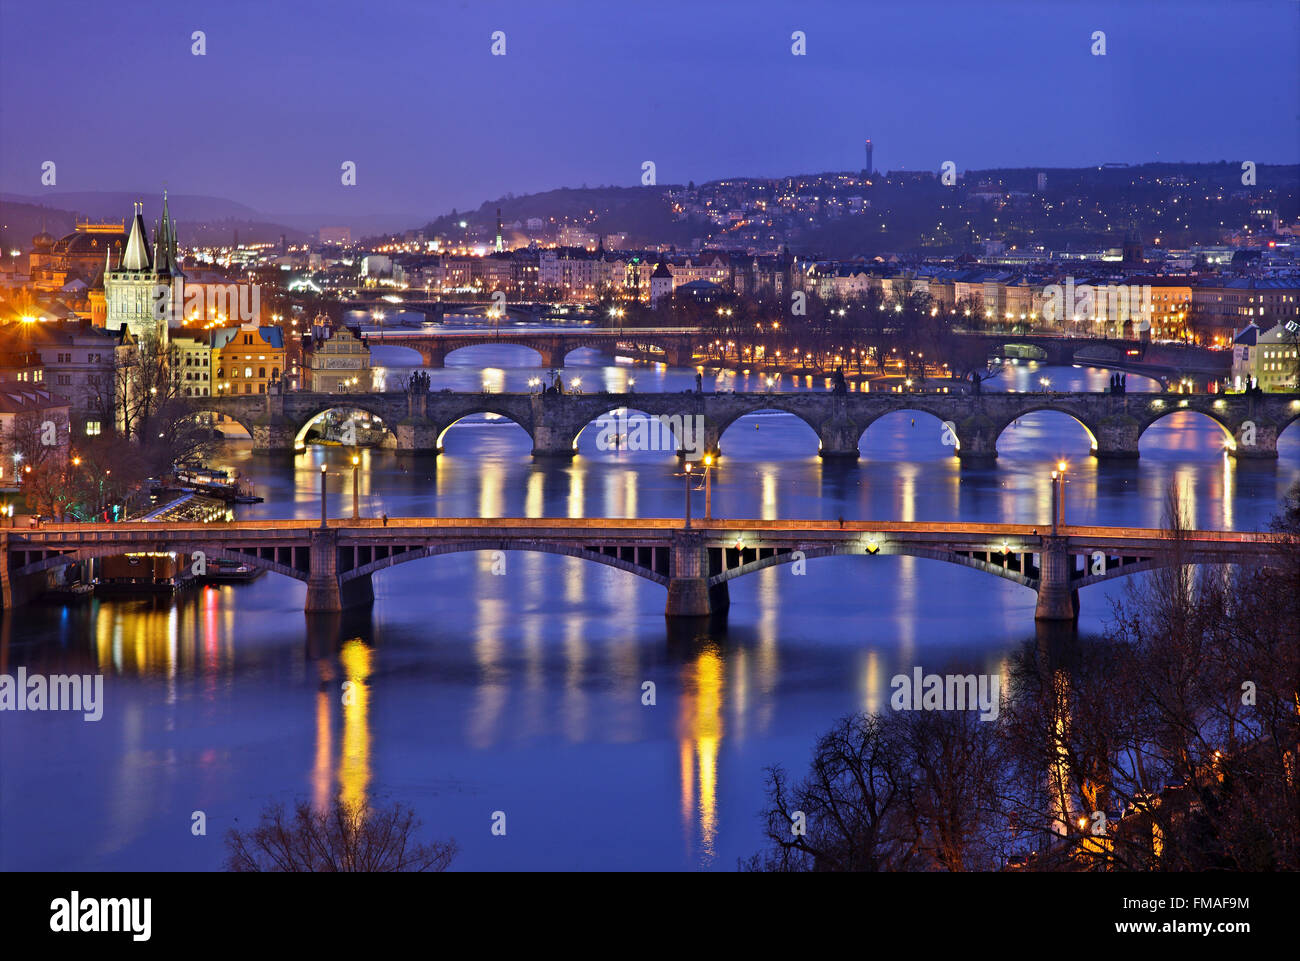 Bridges on Vltava (Moldava), river, Prague, Czech Republic. The one in the middle is the famous Charles' bridge. - Stock Image